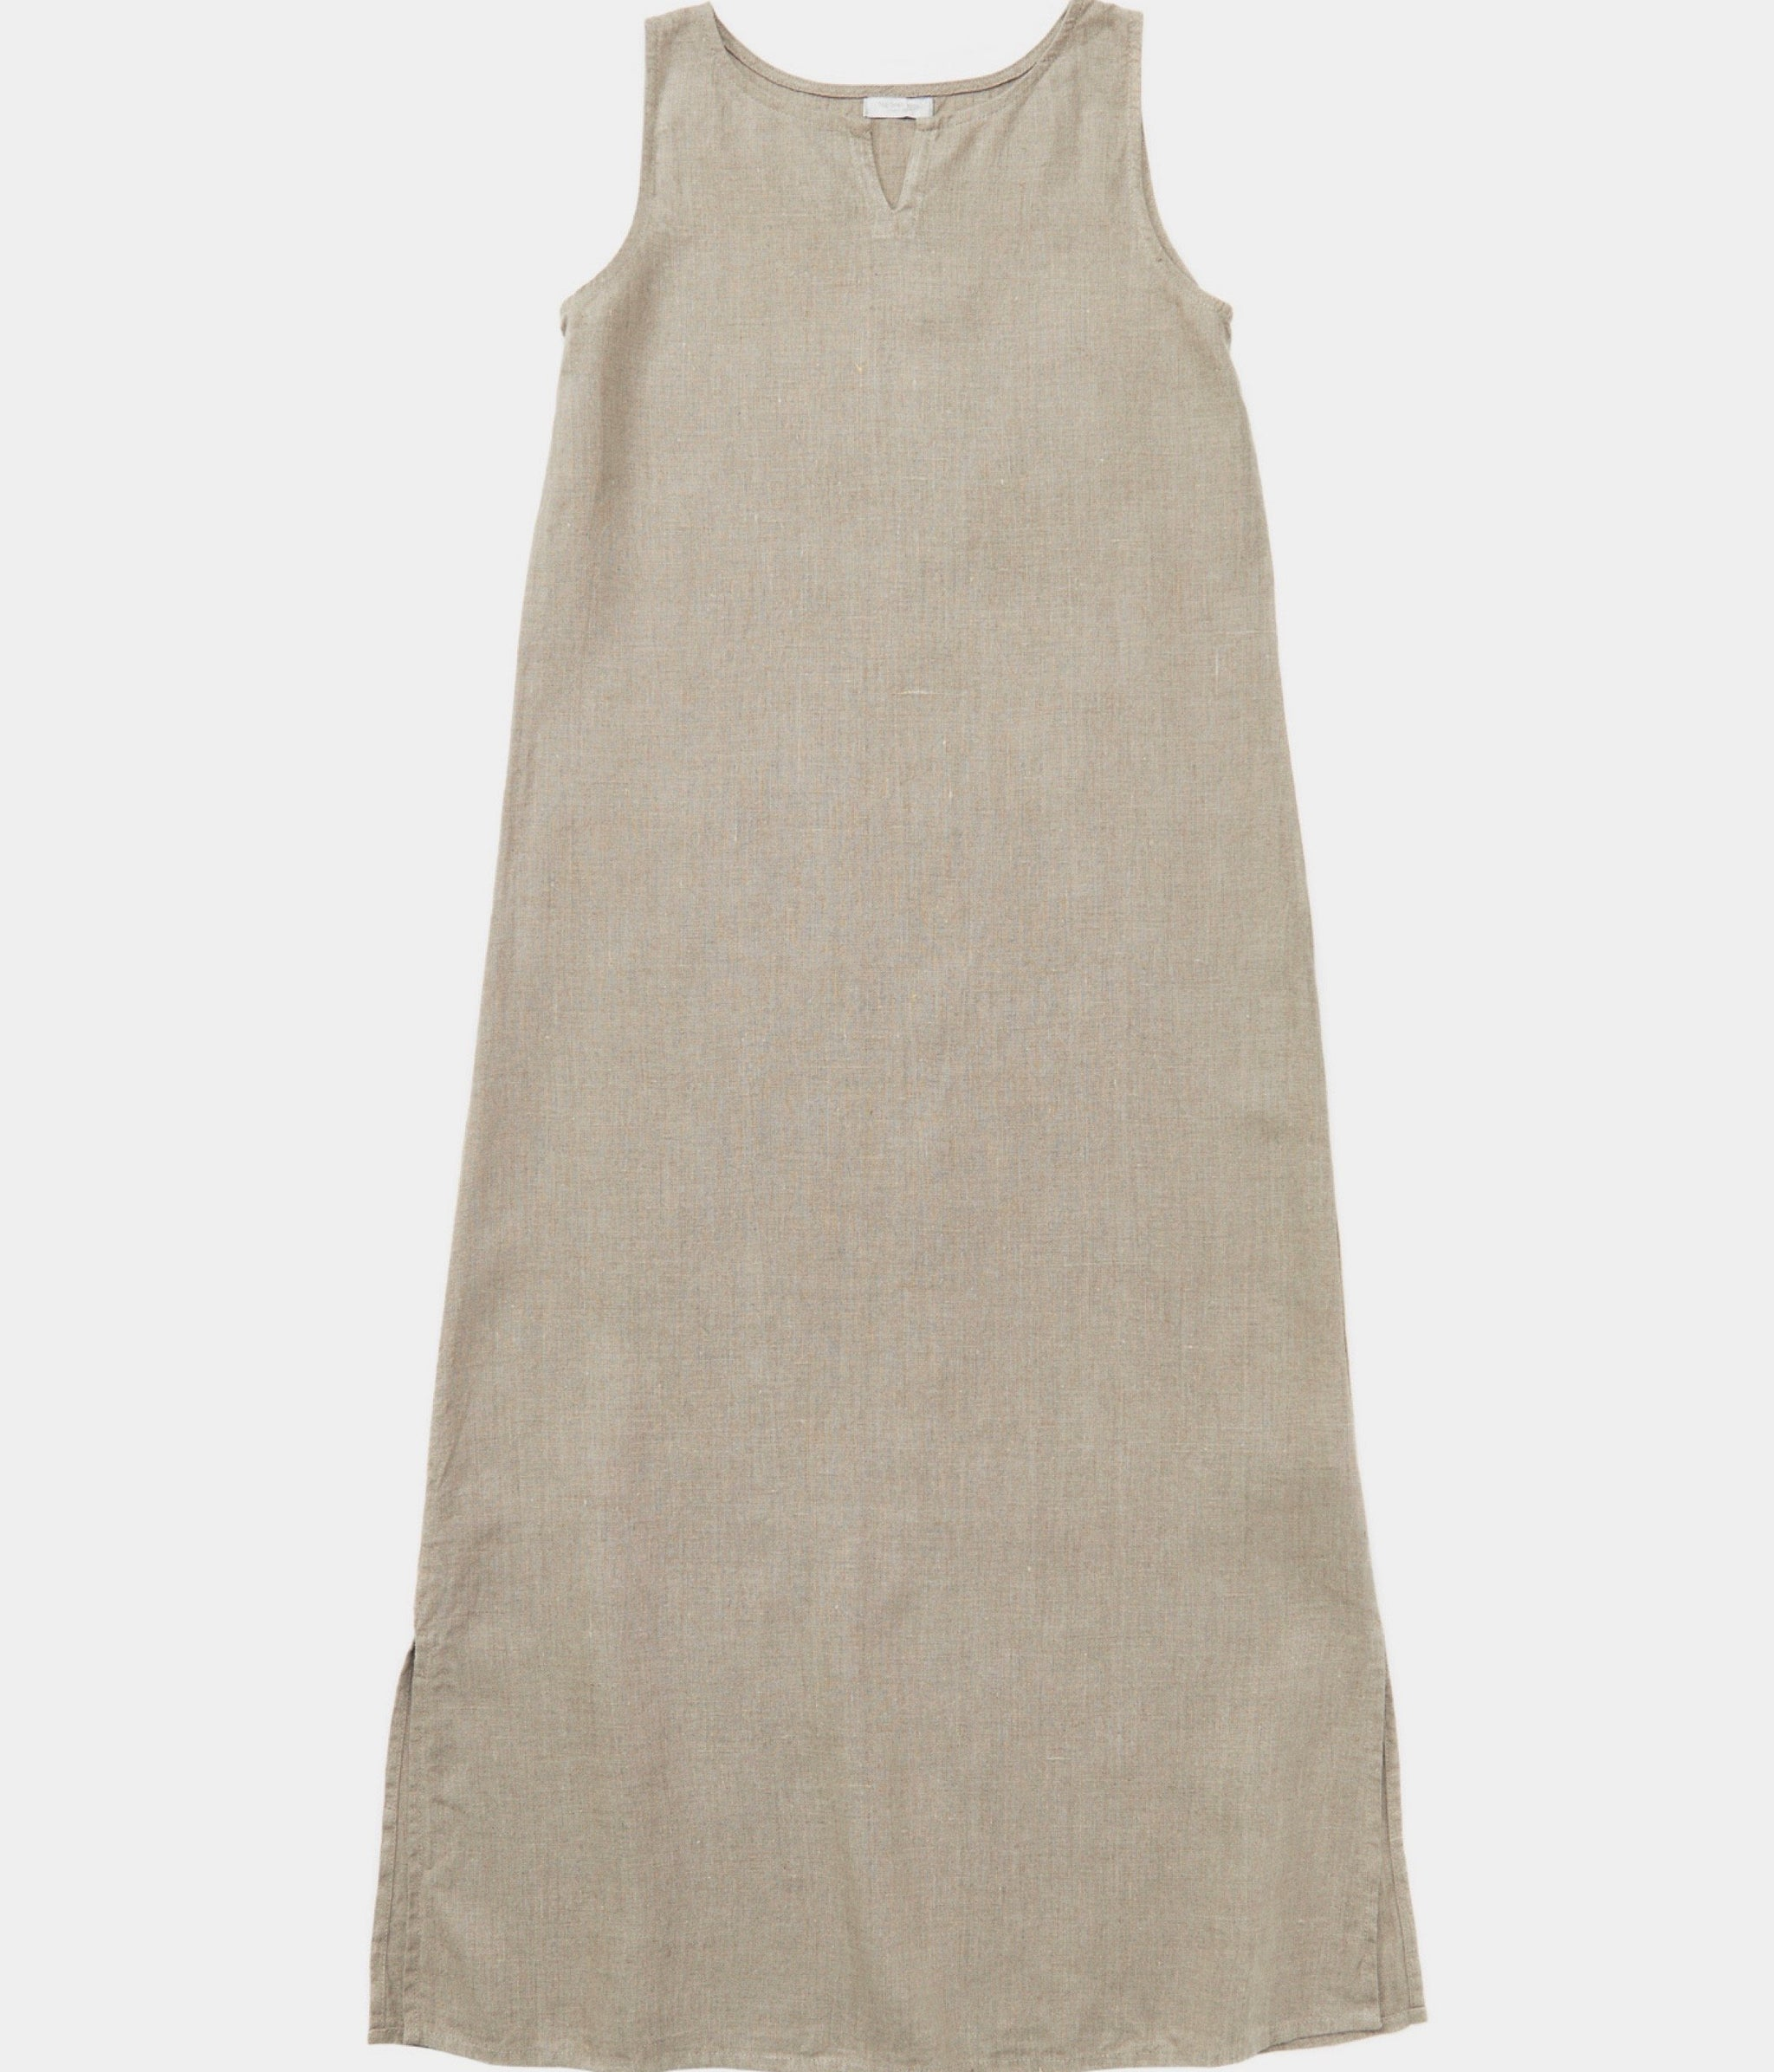 Fog Linen Work Leah Sleeveless Night Shirt in natural linen